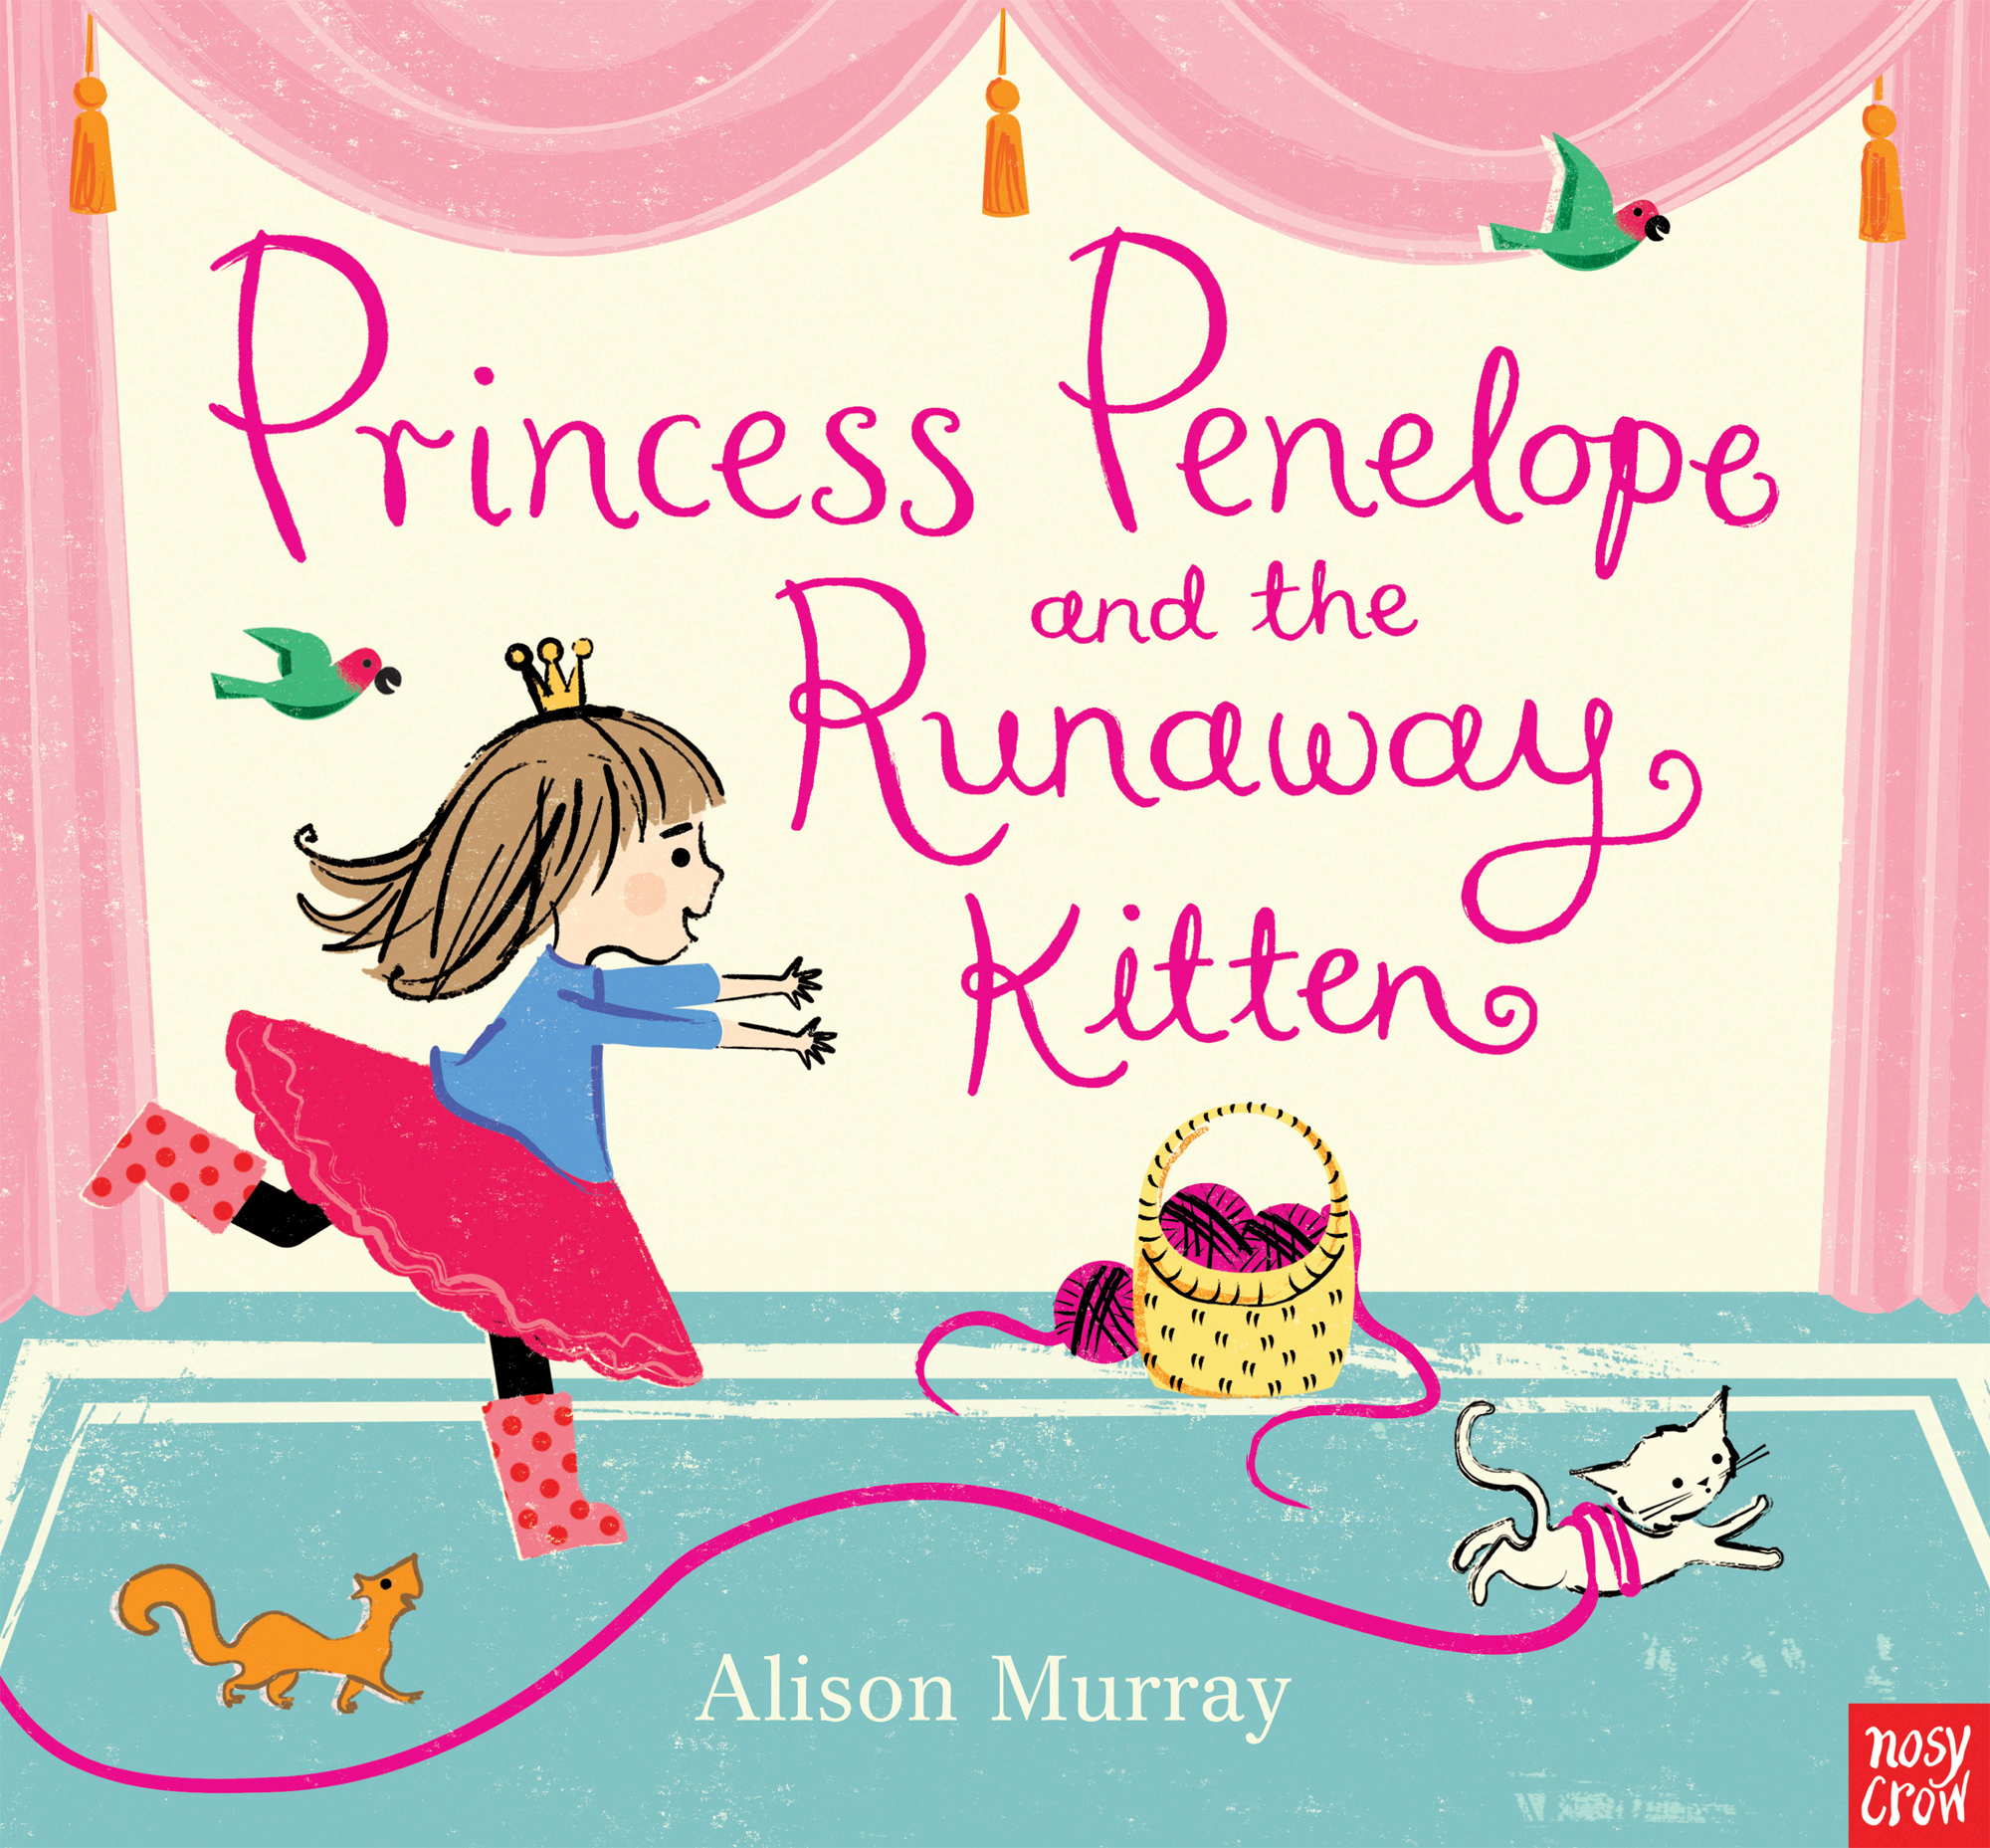 Princess Penelope and the Runaway Kitten by Alison Murray, ISBN: 9780857636553